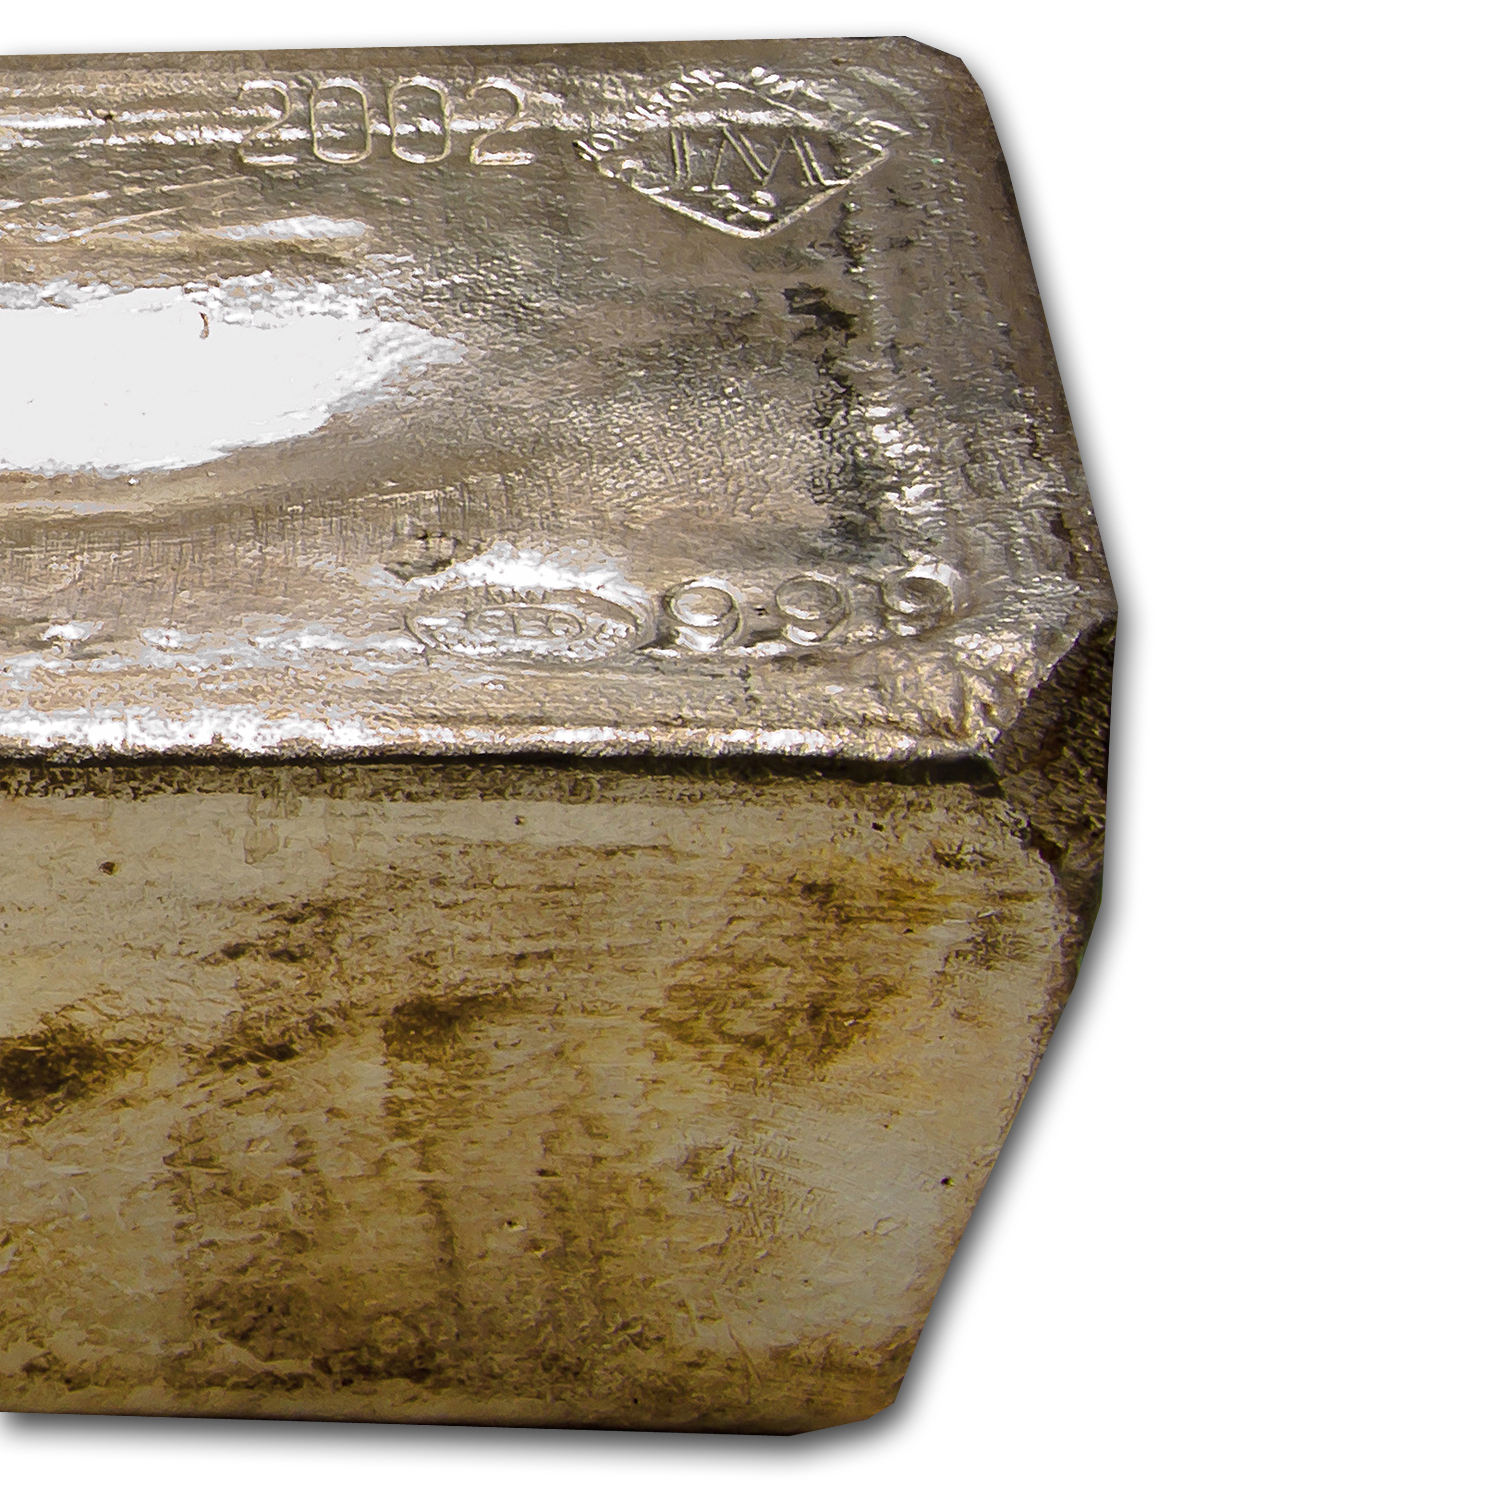 941.20 oz Silver Bar - Johnson Matthey (#2058602)